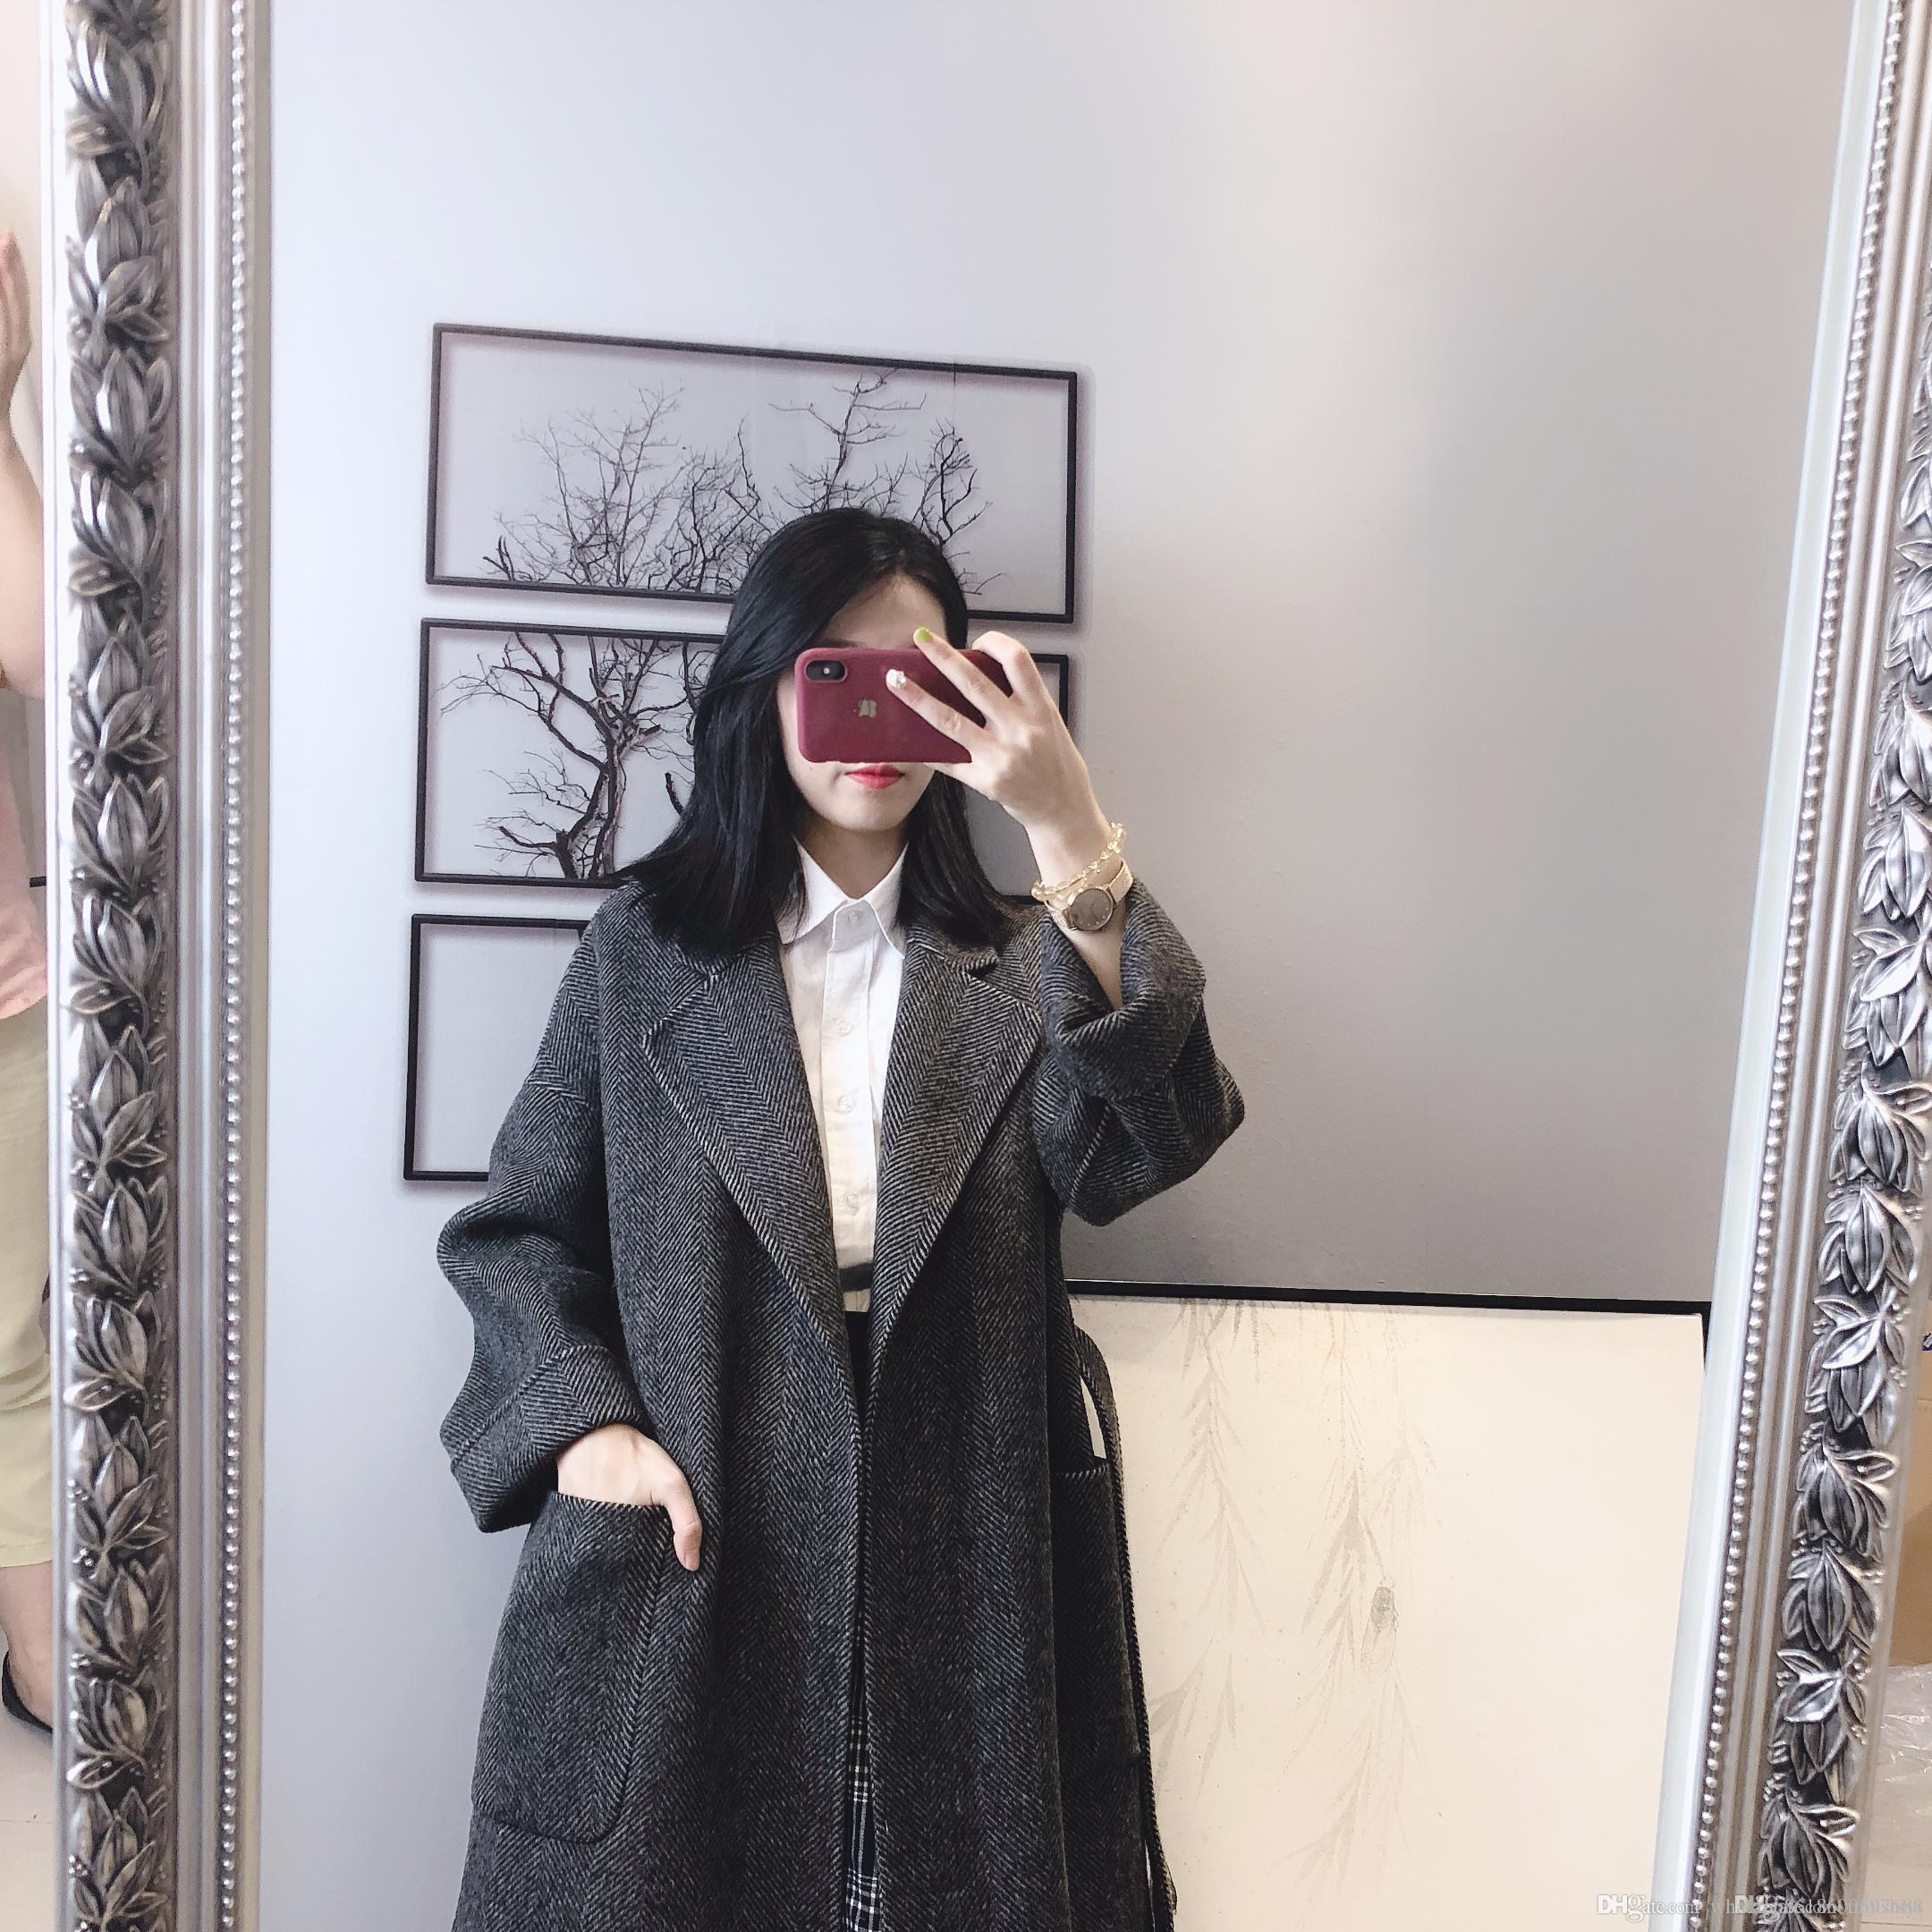 2019 new explosion models hot double-sided cashmere coat women's long section small slim wool coat large size women's clothing